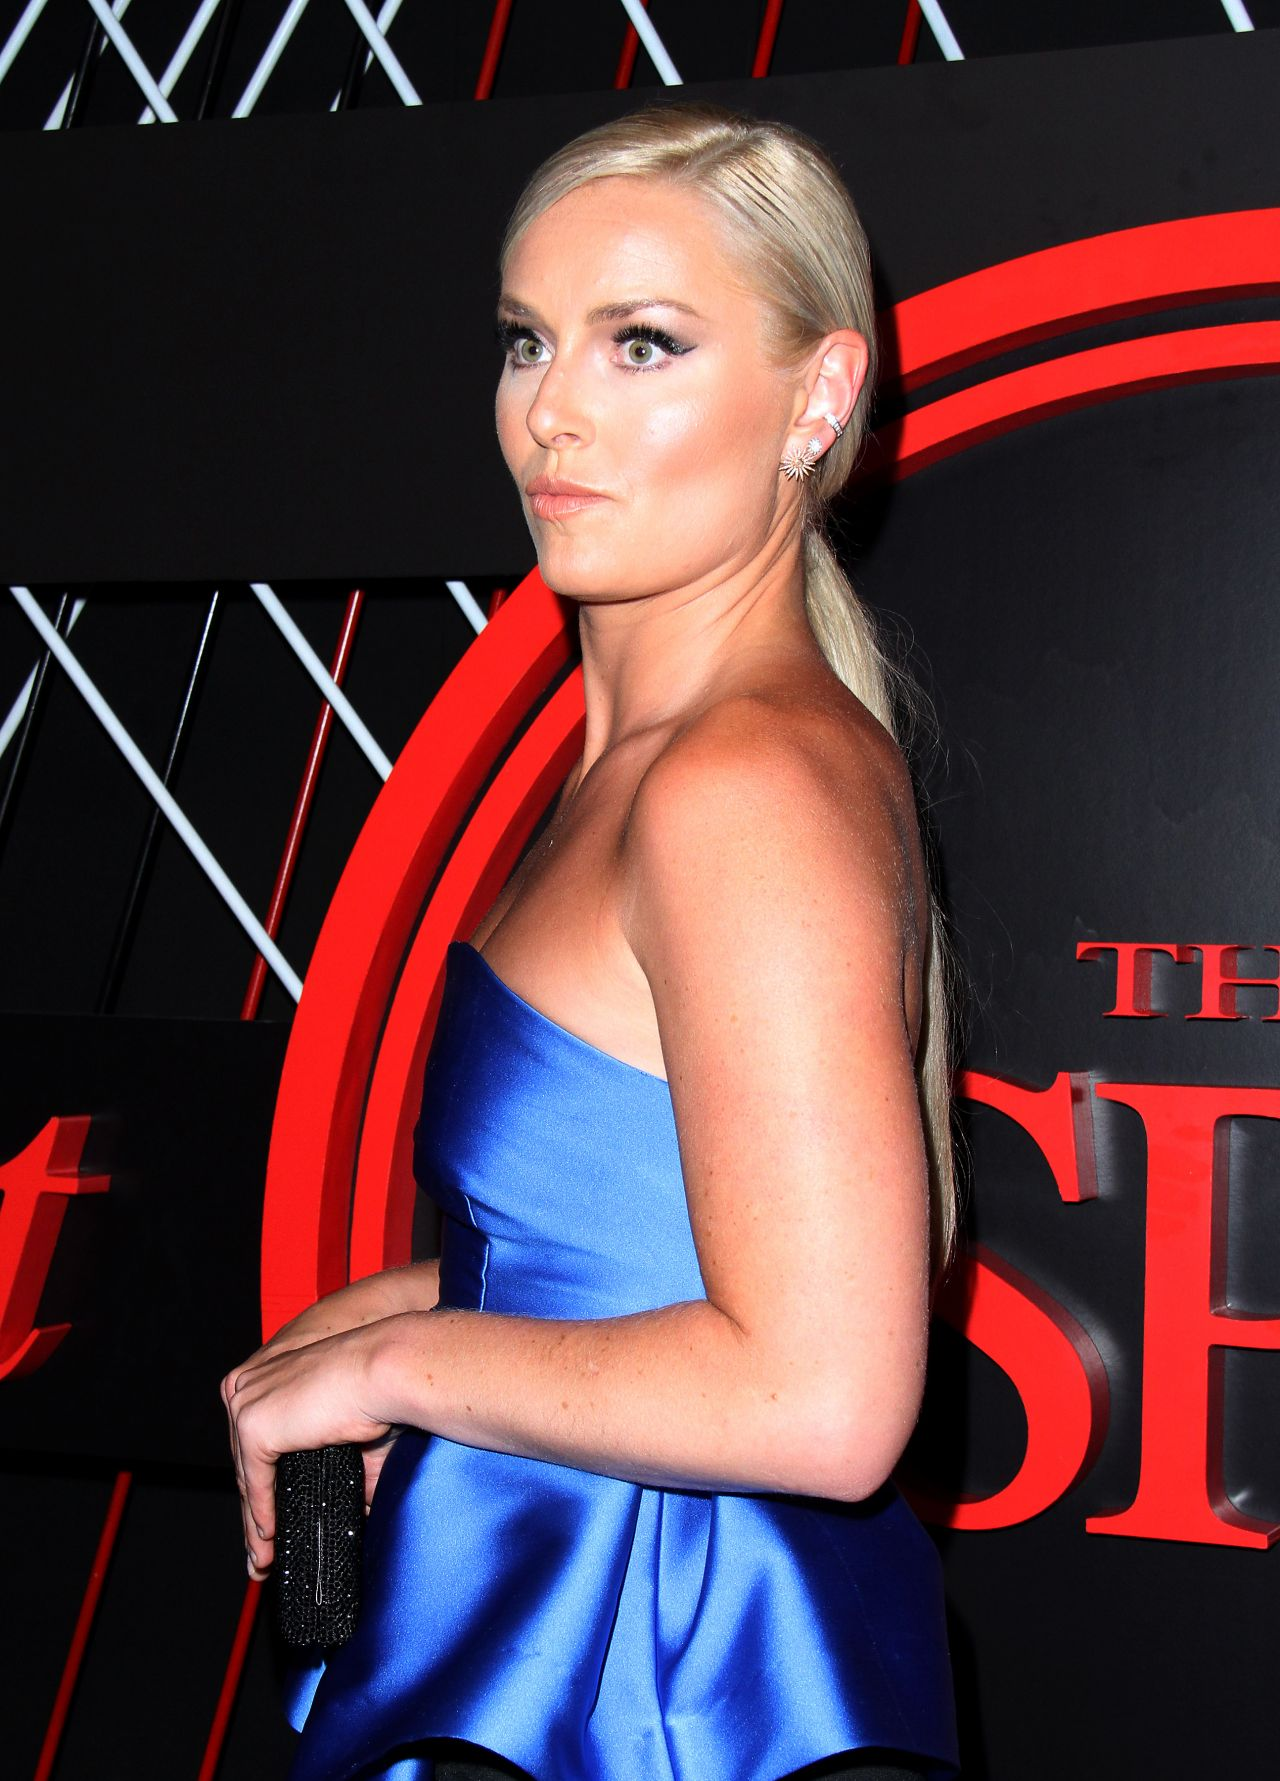 Lindsey Vonn Body At Espys Party In Los Angeles 07 11 2017